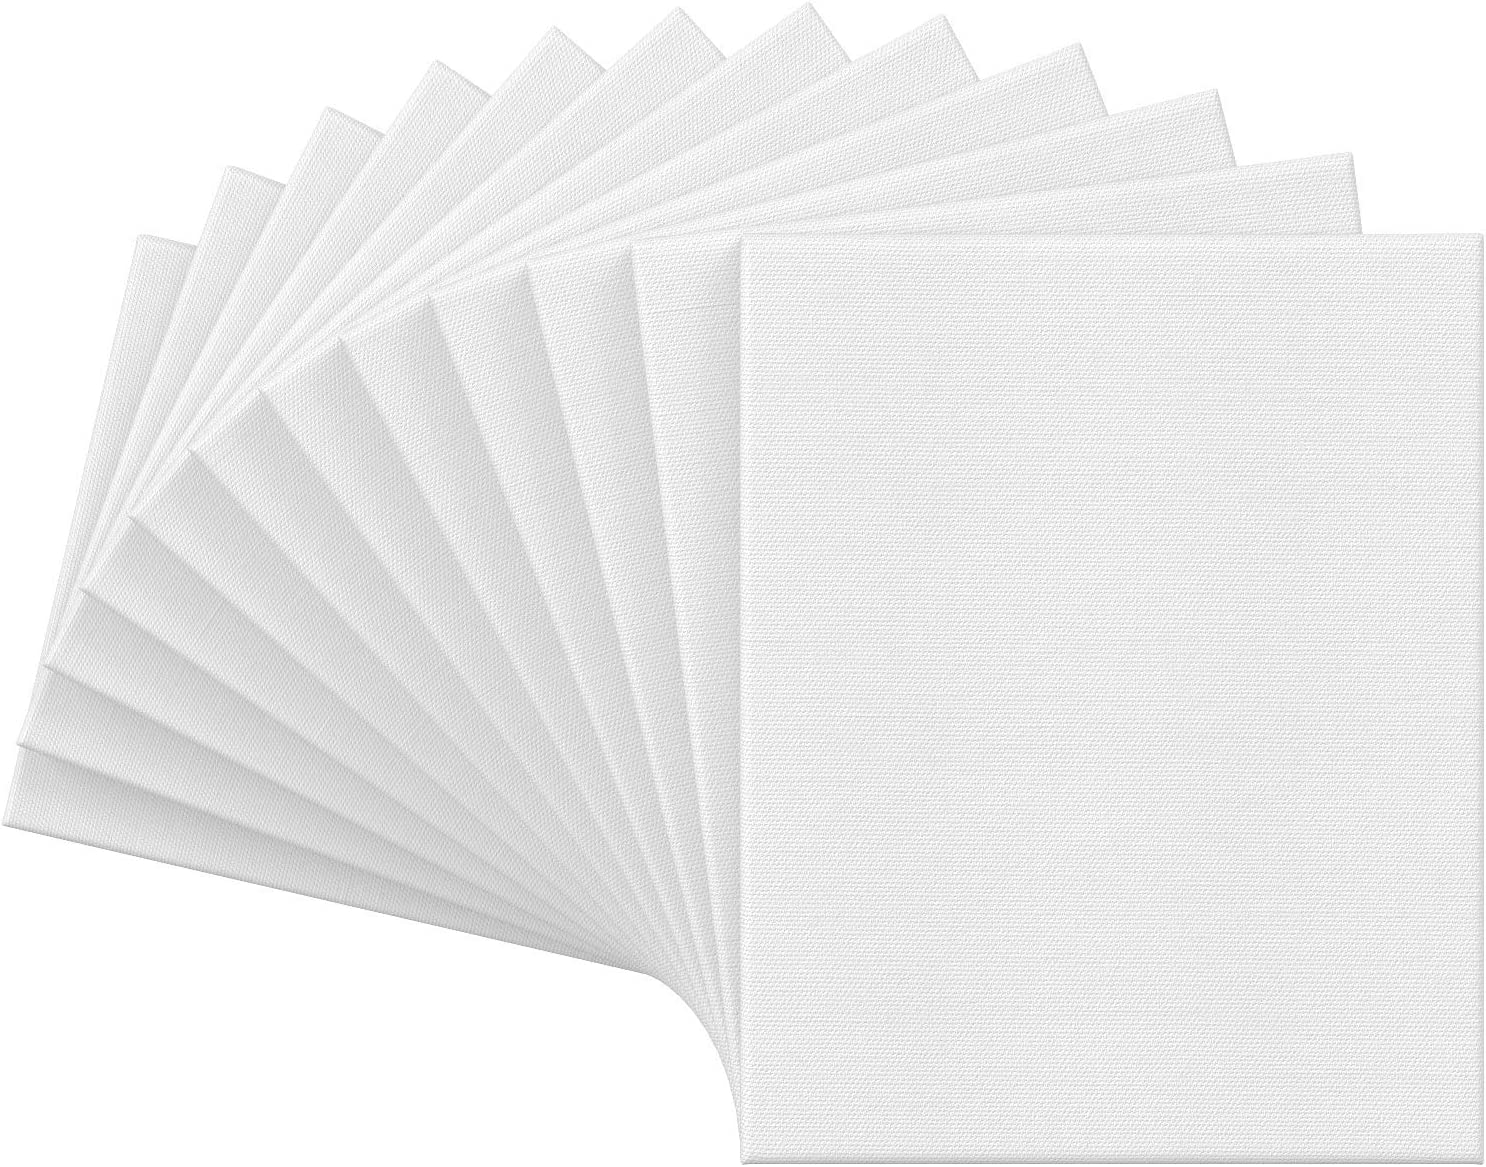 Cotton Stretched Canvas,Double Acrylic Primed Painting Canvas with Wooden Frame Medium Weight Blank Canvas 3pcs(polygons) Ideal for Acrylic or Oil Paints Acid-Free